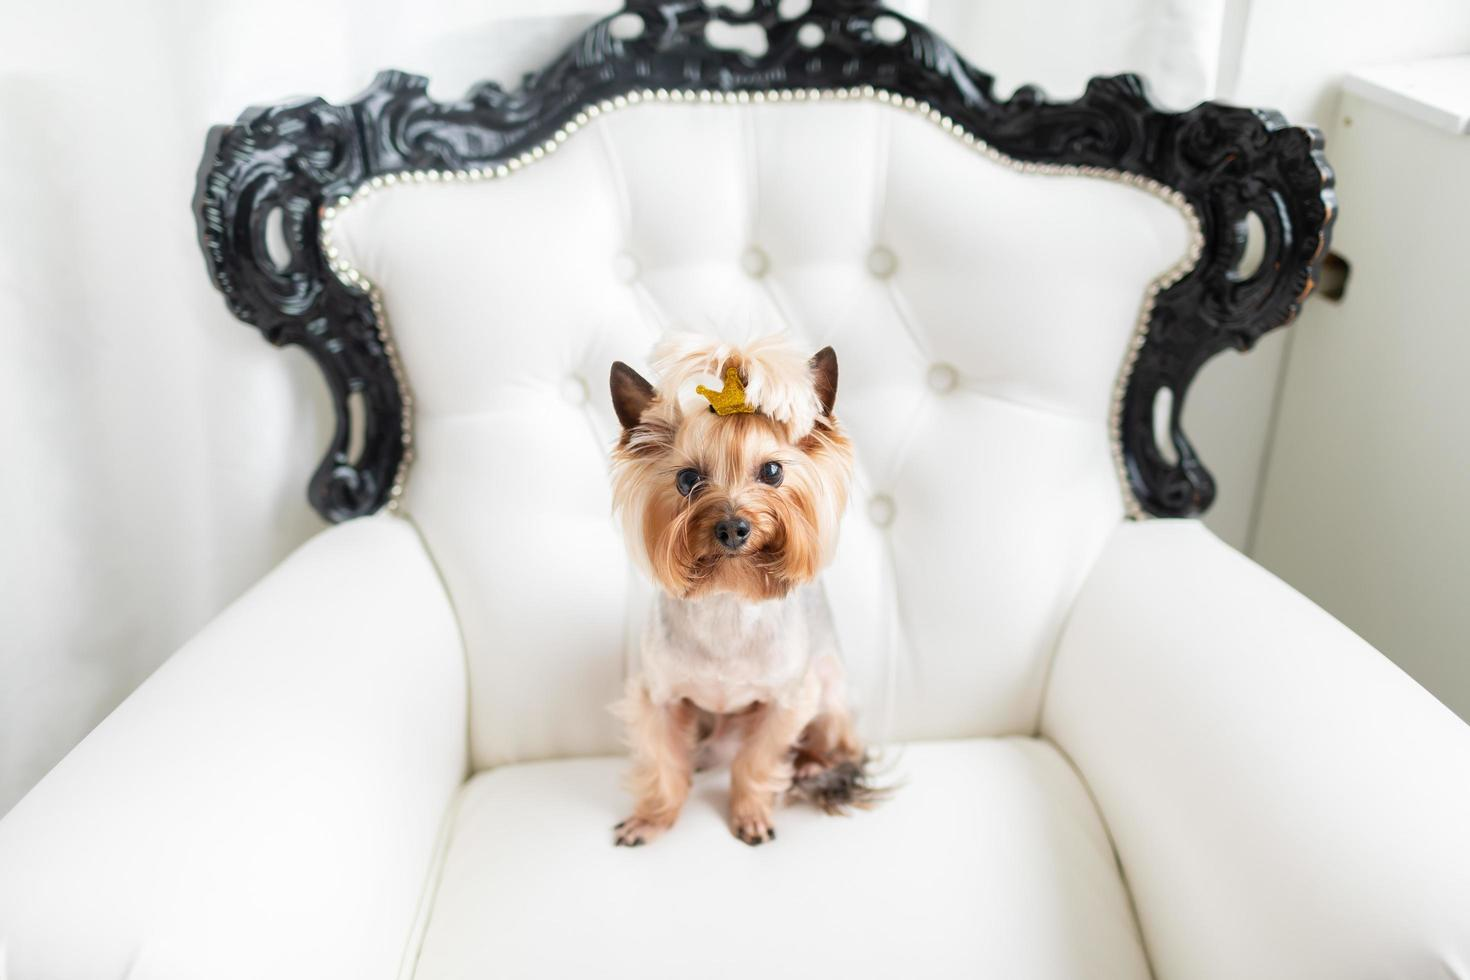 Yorkshire Terrier sitting on a chair photo